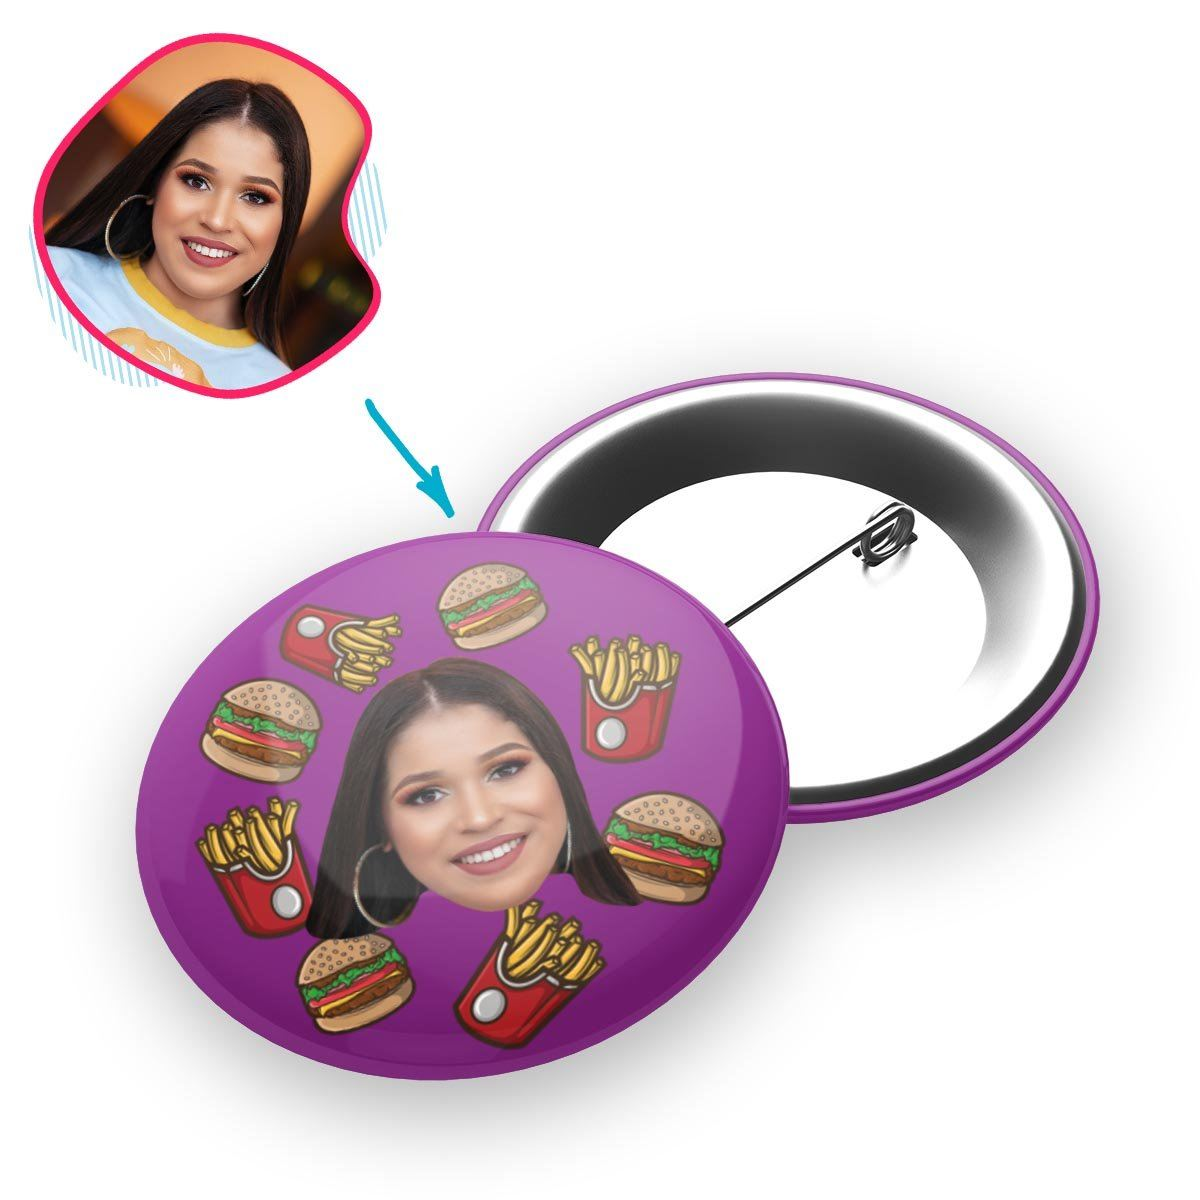 purple Fastfood pin personalized with photo of face printed on it